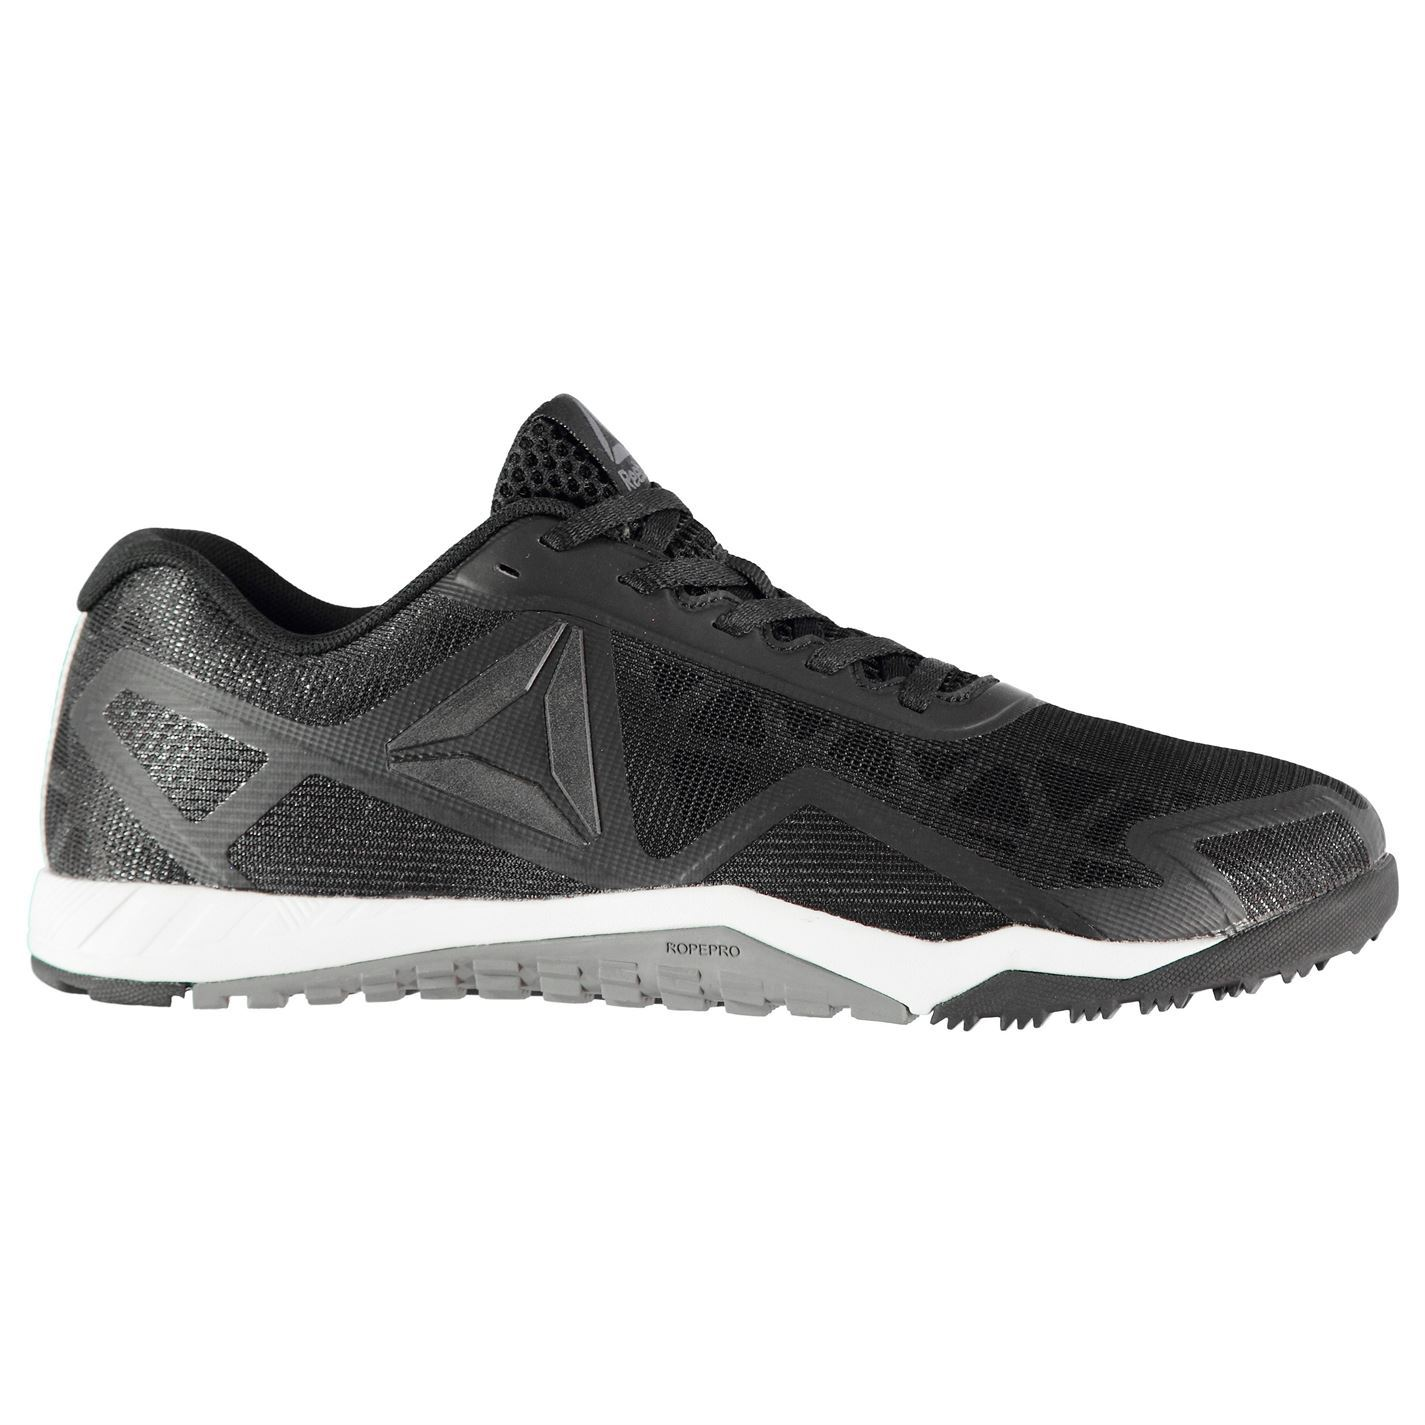 3bc50539814 Details about Reebok Workout 2.0 Training Shoes Mens Black Fitness Workout  Trainers Sneakers